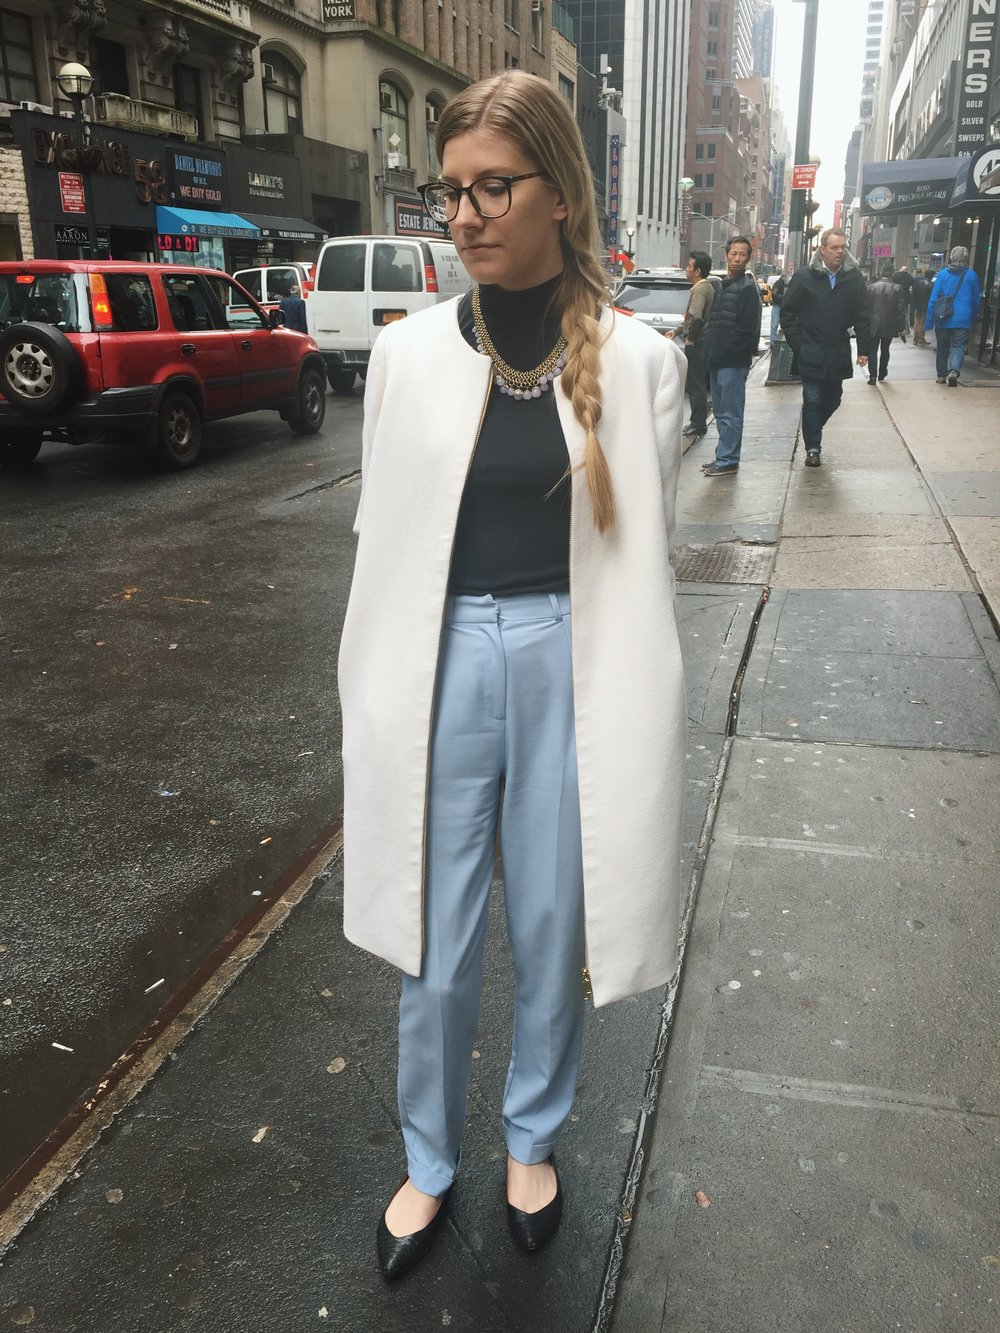 Diamond District, Manhattan (this photo was taken right after I purchased this coat secondhand from a friend)